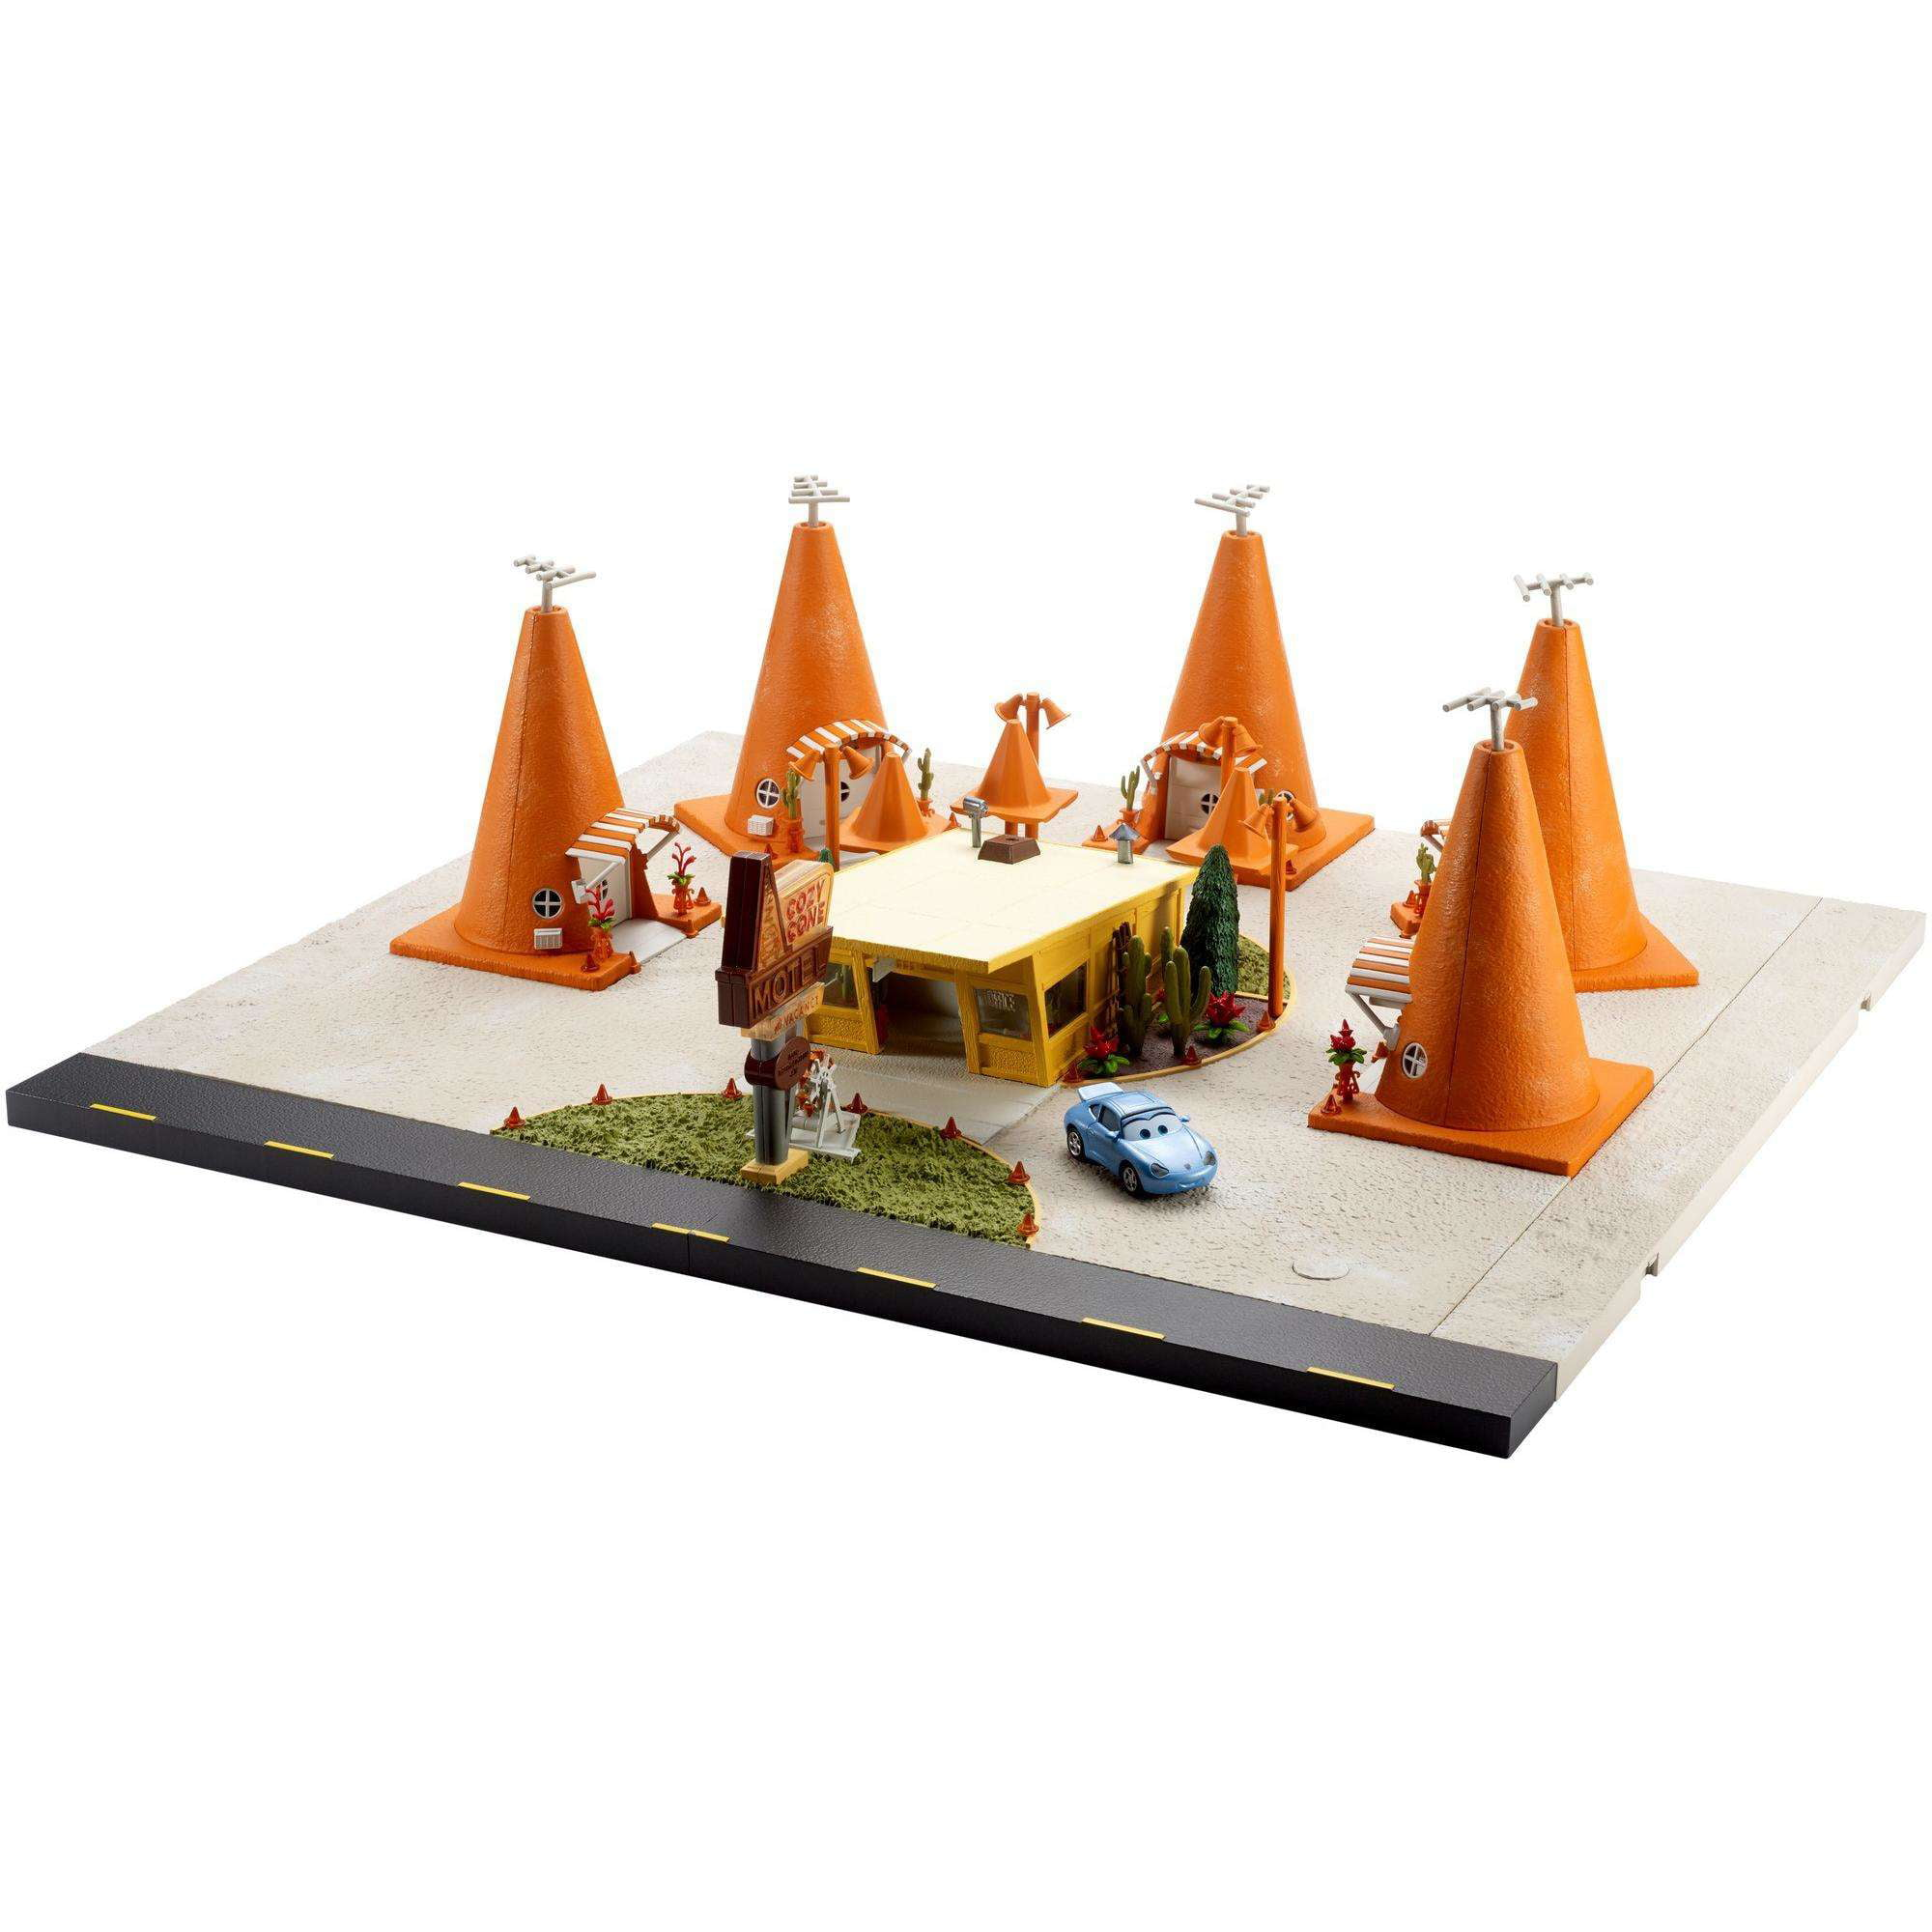 Disney Pixar Cars Precision Series Sally's Cozy Cone Motel Playset by Mattel